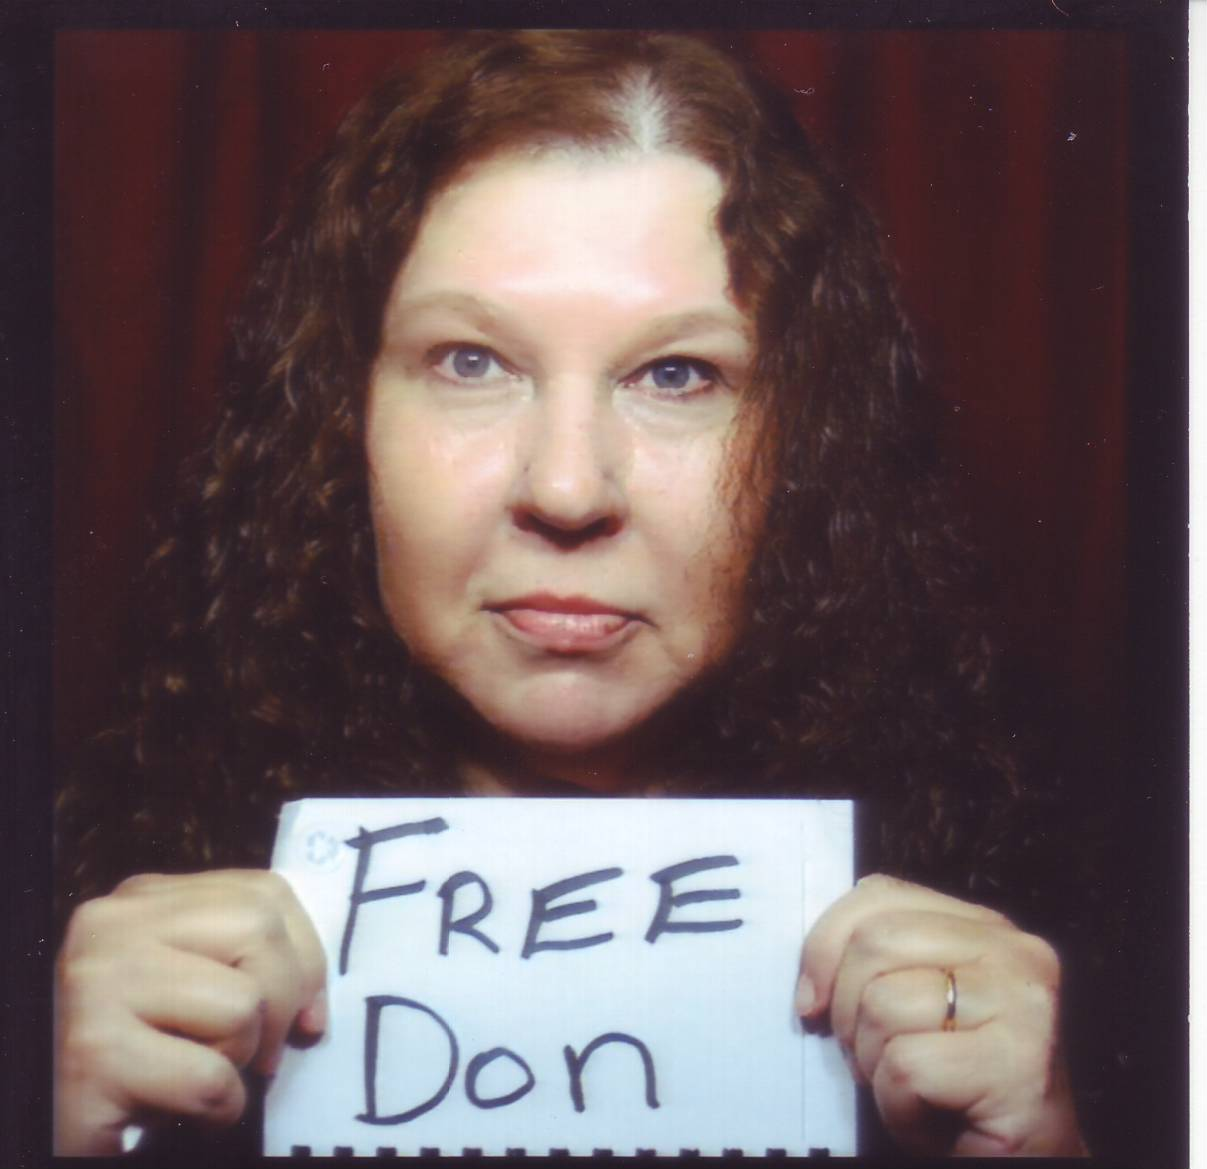 Pam Miles Free Don